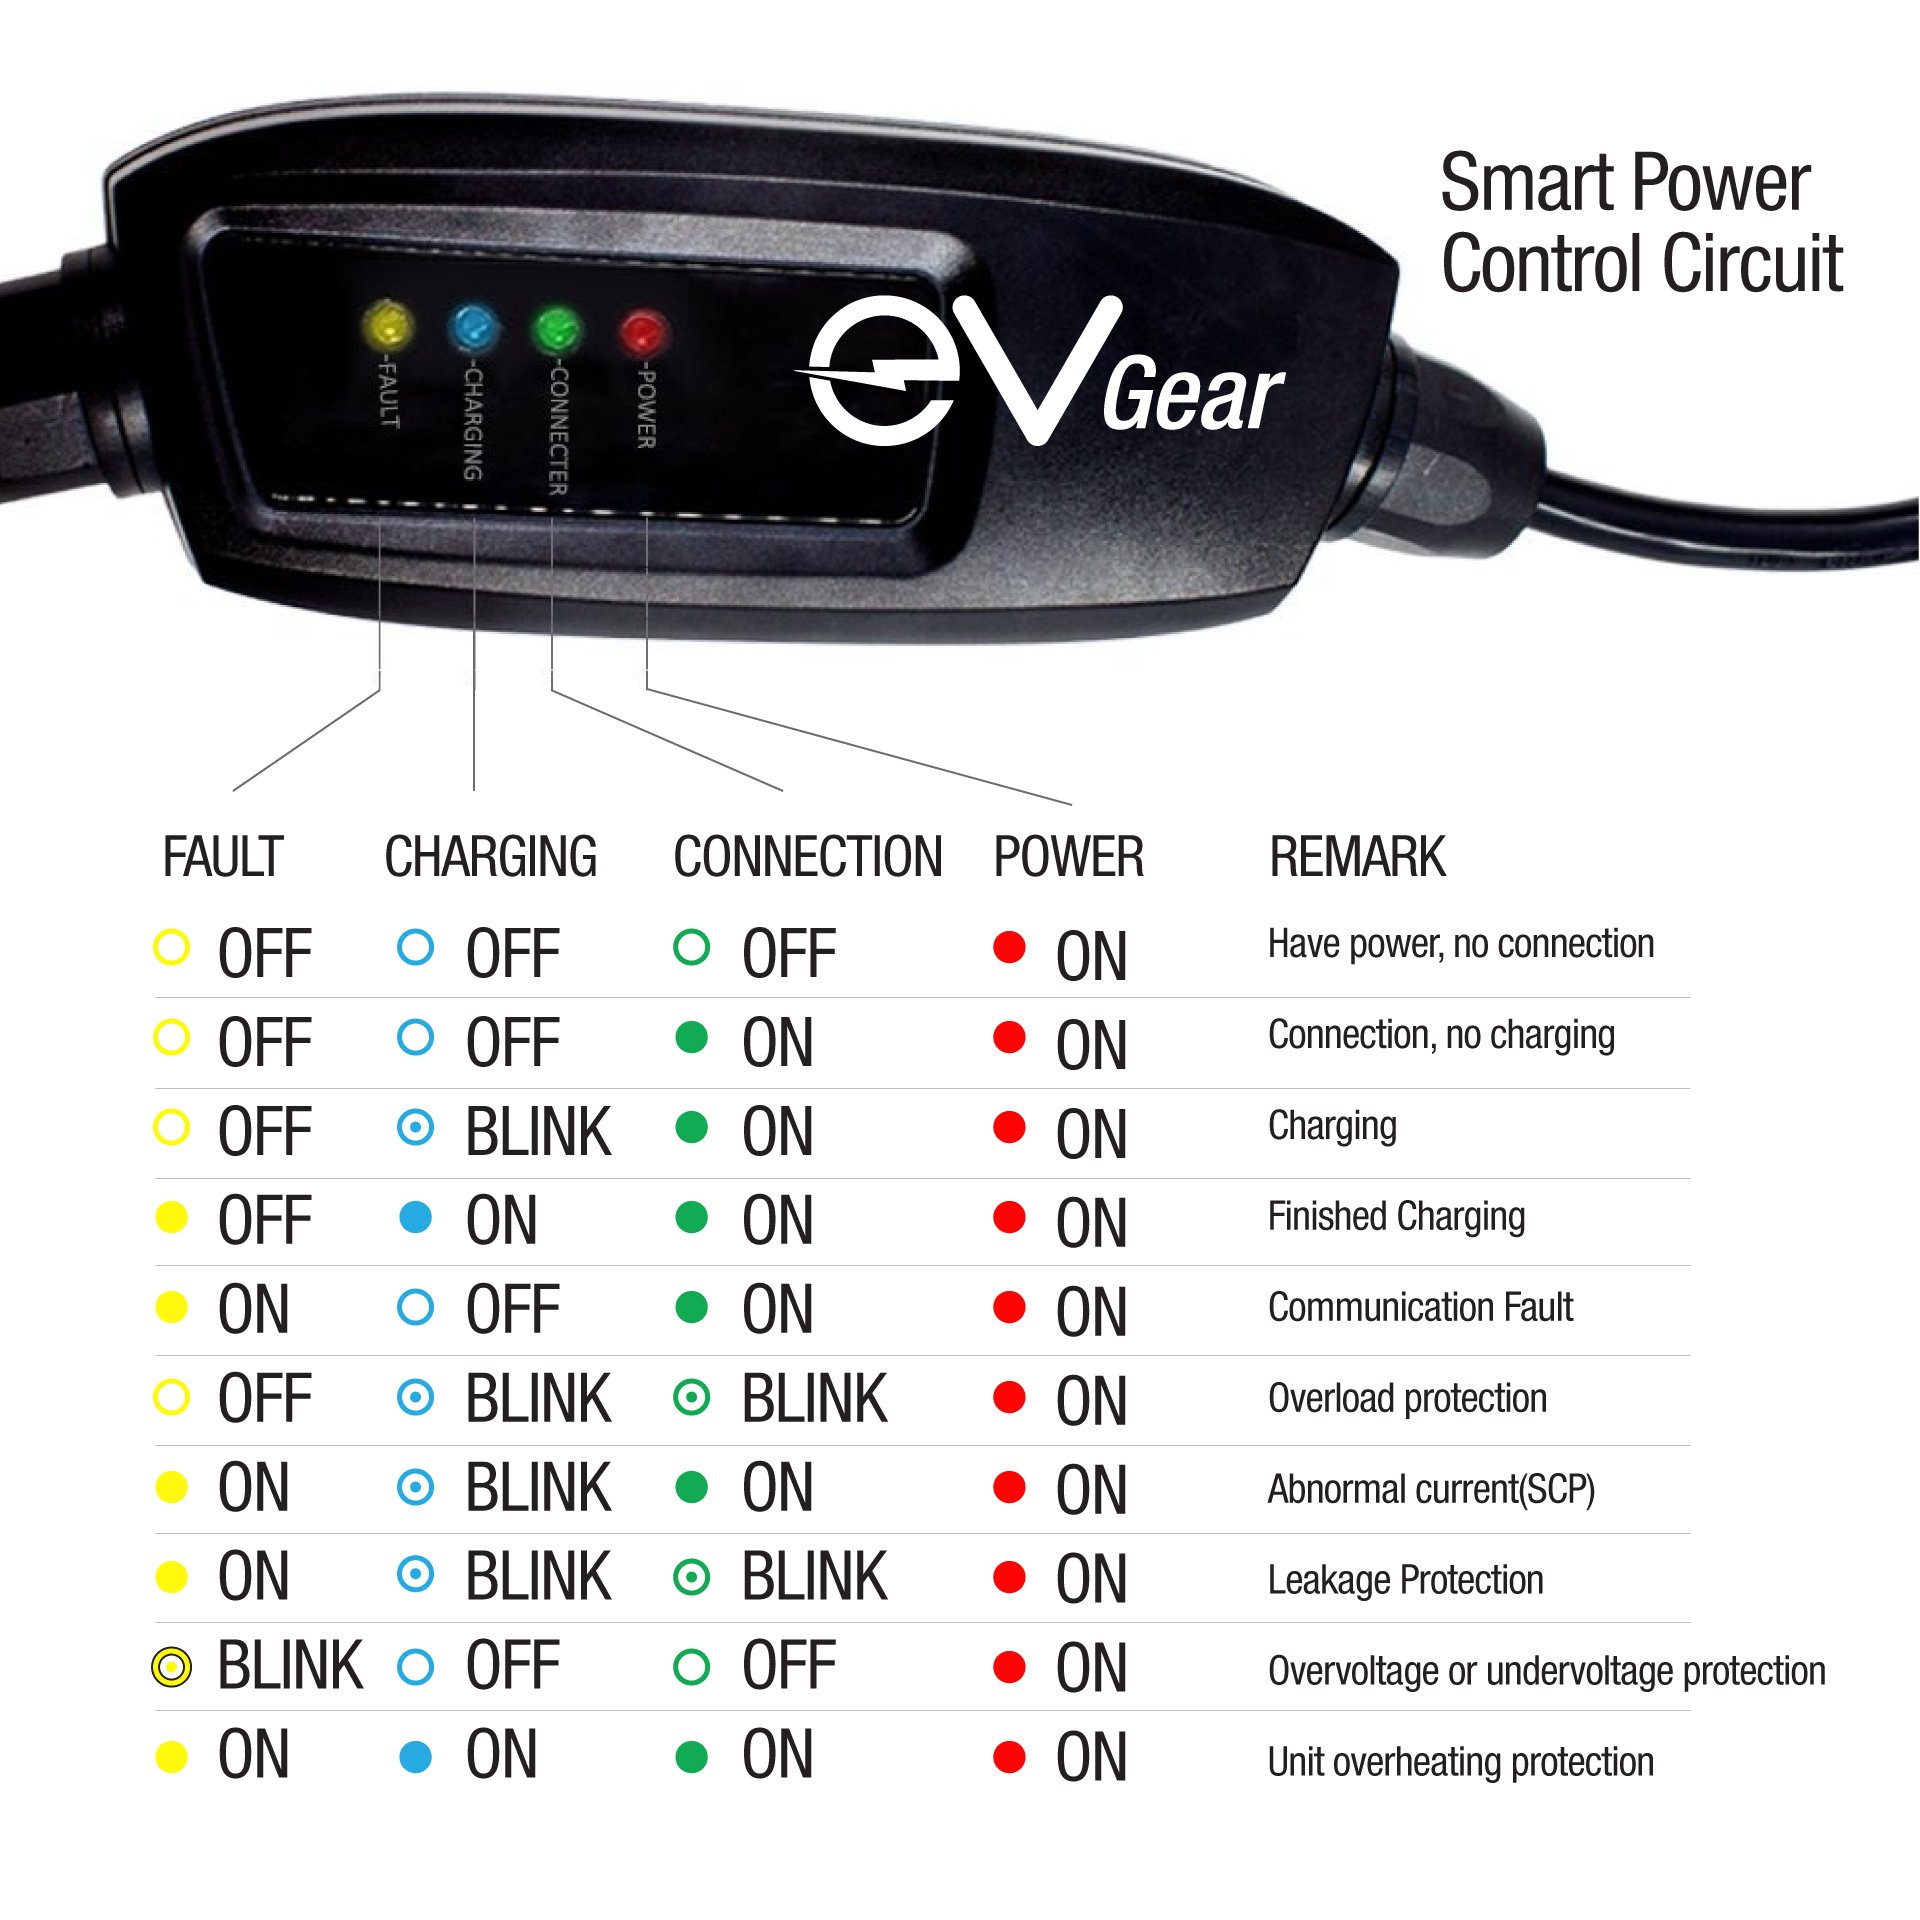 Level 2 EV Charger by EV Gear | 30 ft Portable Plug-In Charger, 110v - 240v | Includes Level 1 Adapter | Works with all Electric & Hybrid Cars such as Chevy Volt/Bolt, Nissan Leaf, Prius Prime, Tesla by EV Gear (Image #8)